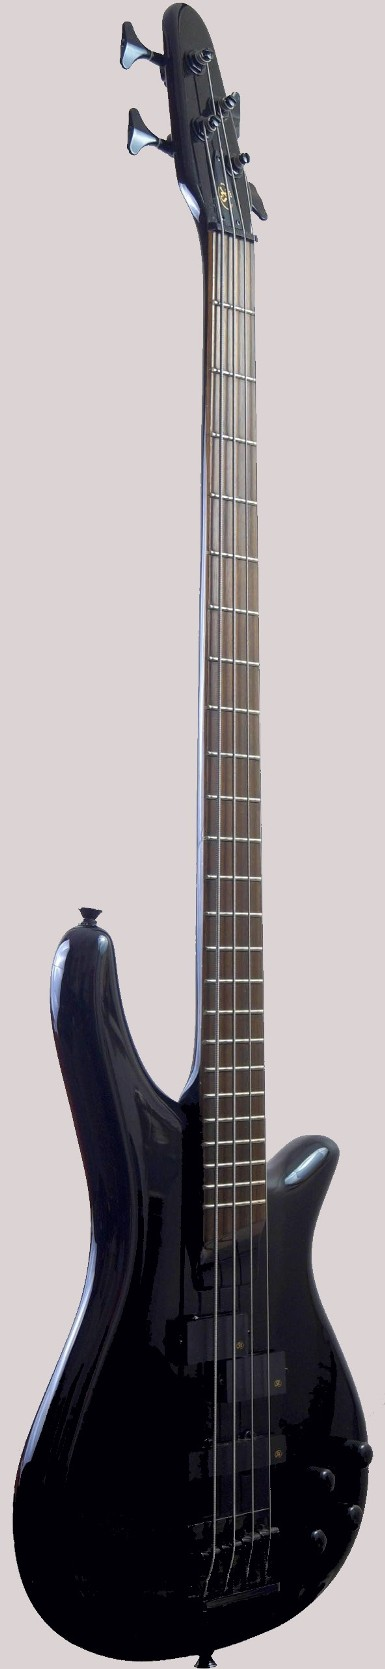 japanese designed 2 pickup bass guitar at Ukulele Corner